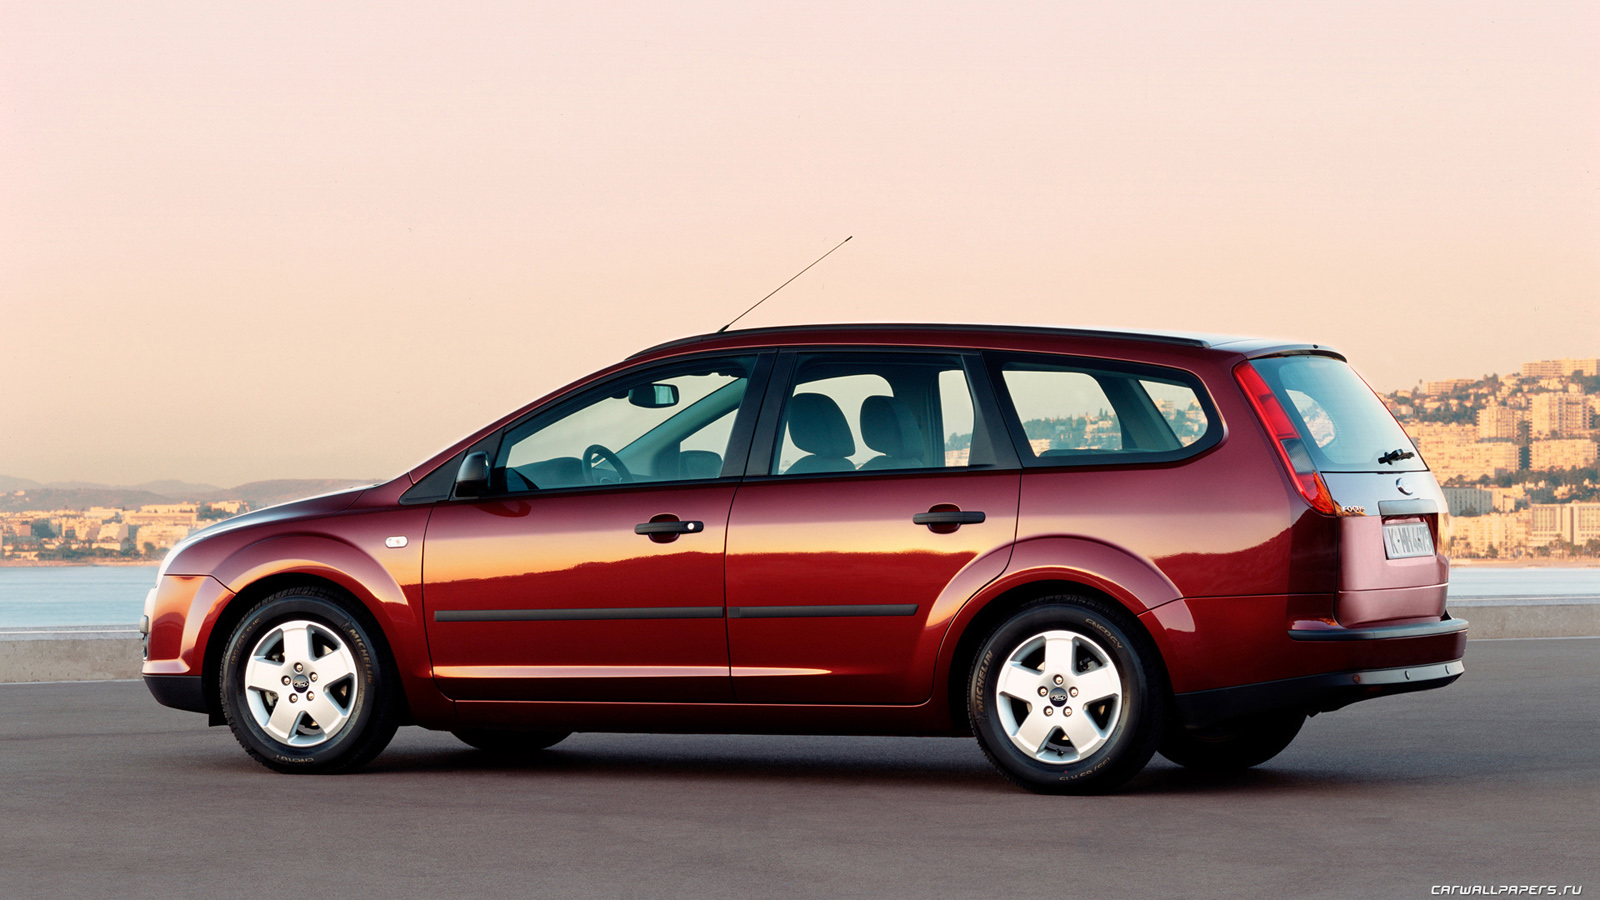 Ford focus 2005 photo - 4